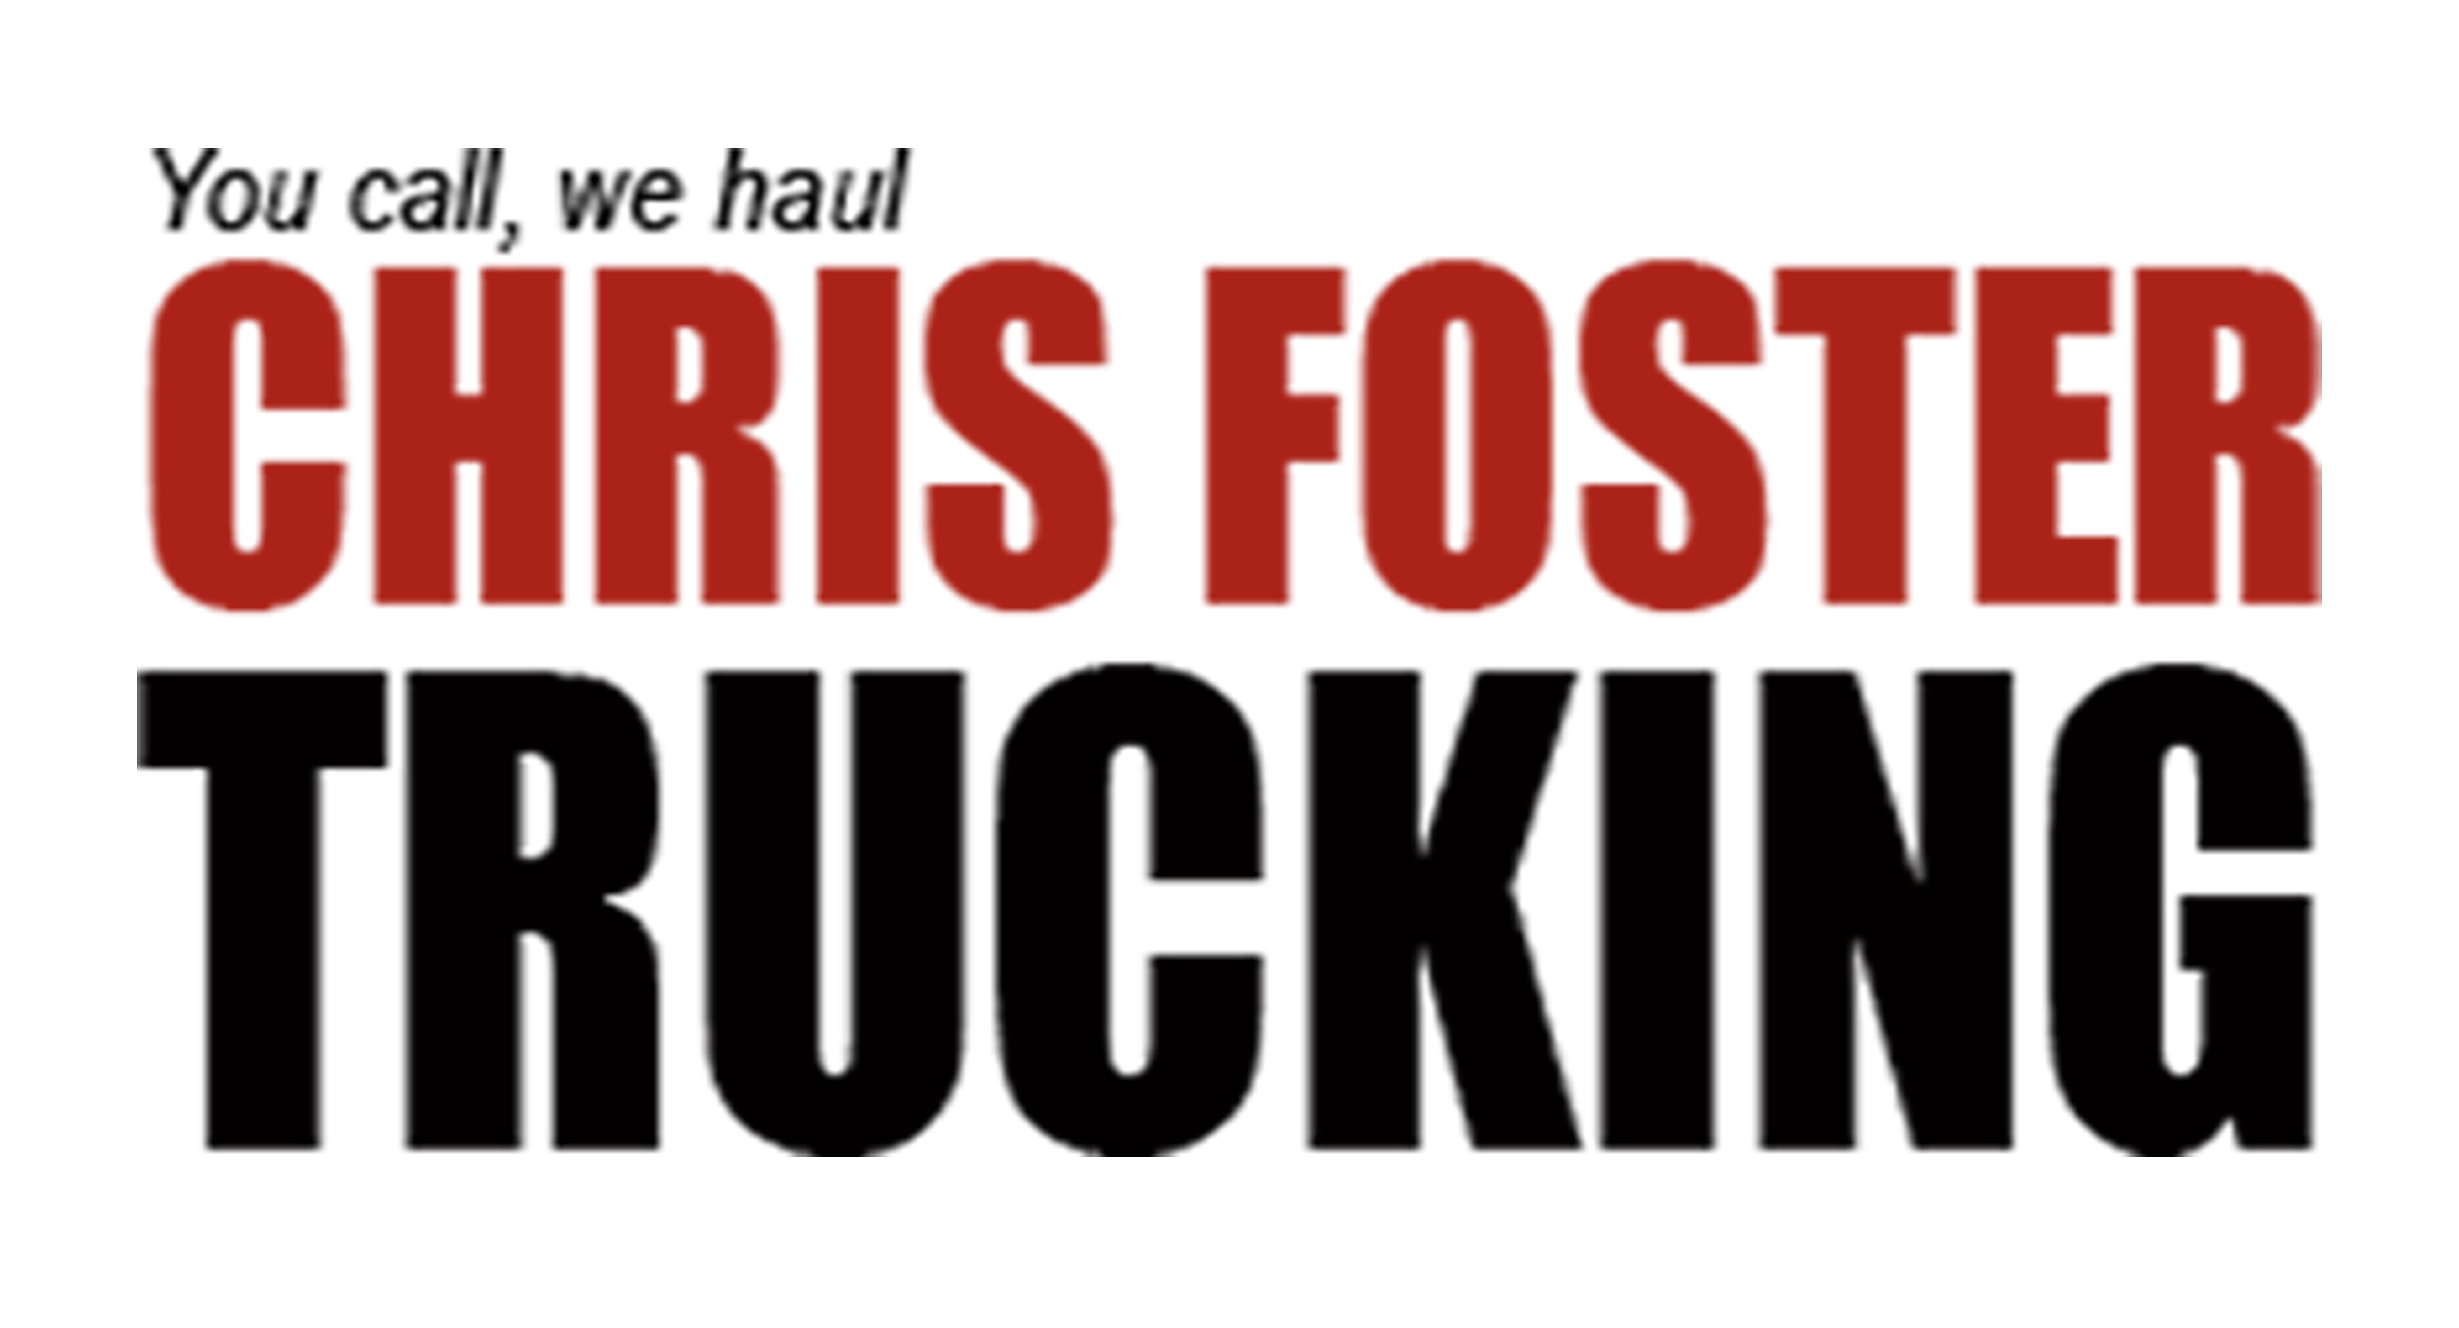 Chris Foster Trucking 1.jpg